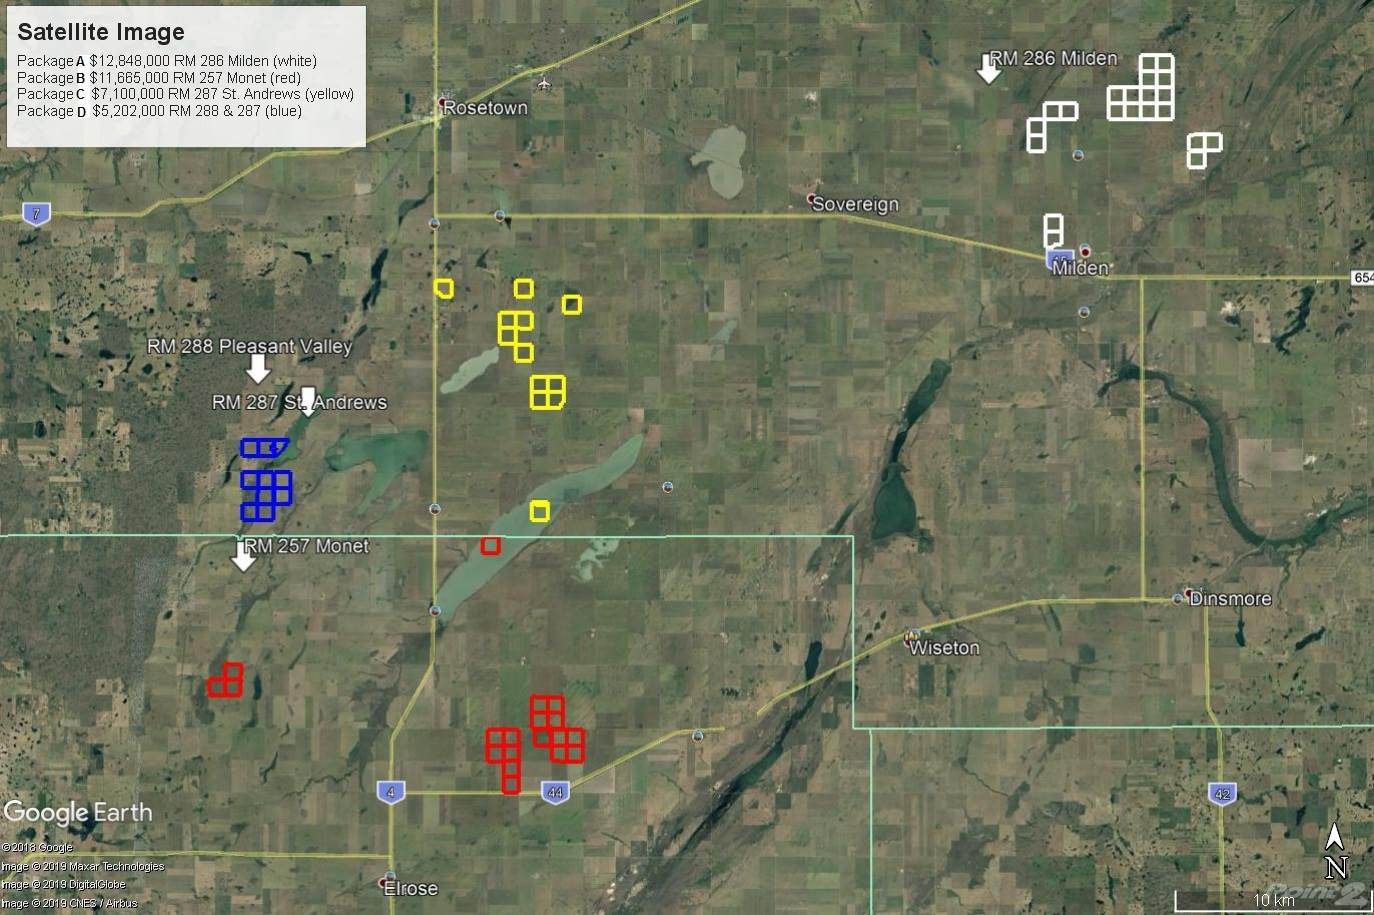 Farms & Ranches for sale in RM 286, 257, 287 & 288 - 9,783.5 Acres, Milden, Saskatchewan ,S0K 2L0  , Canada